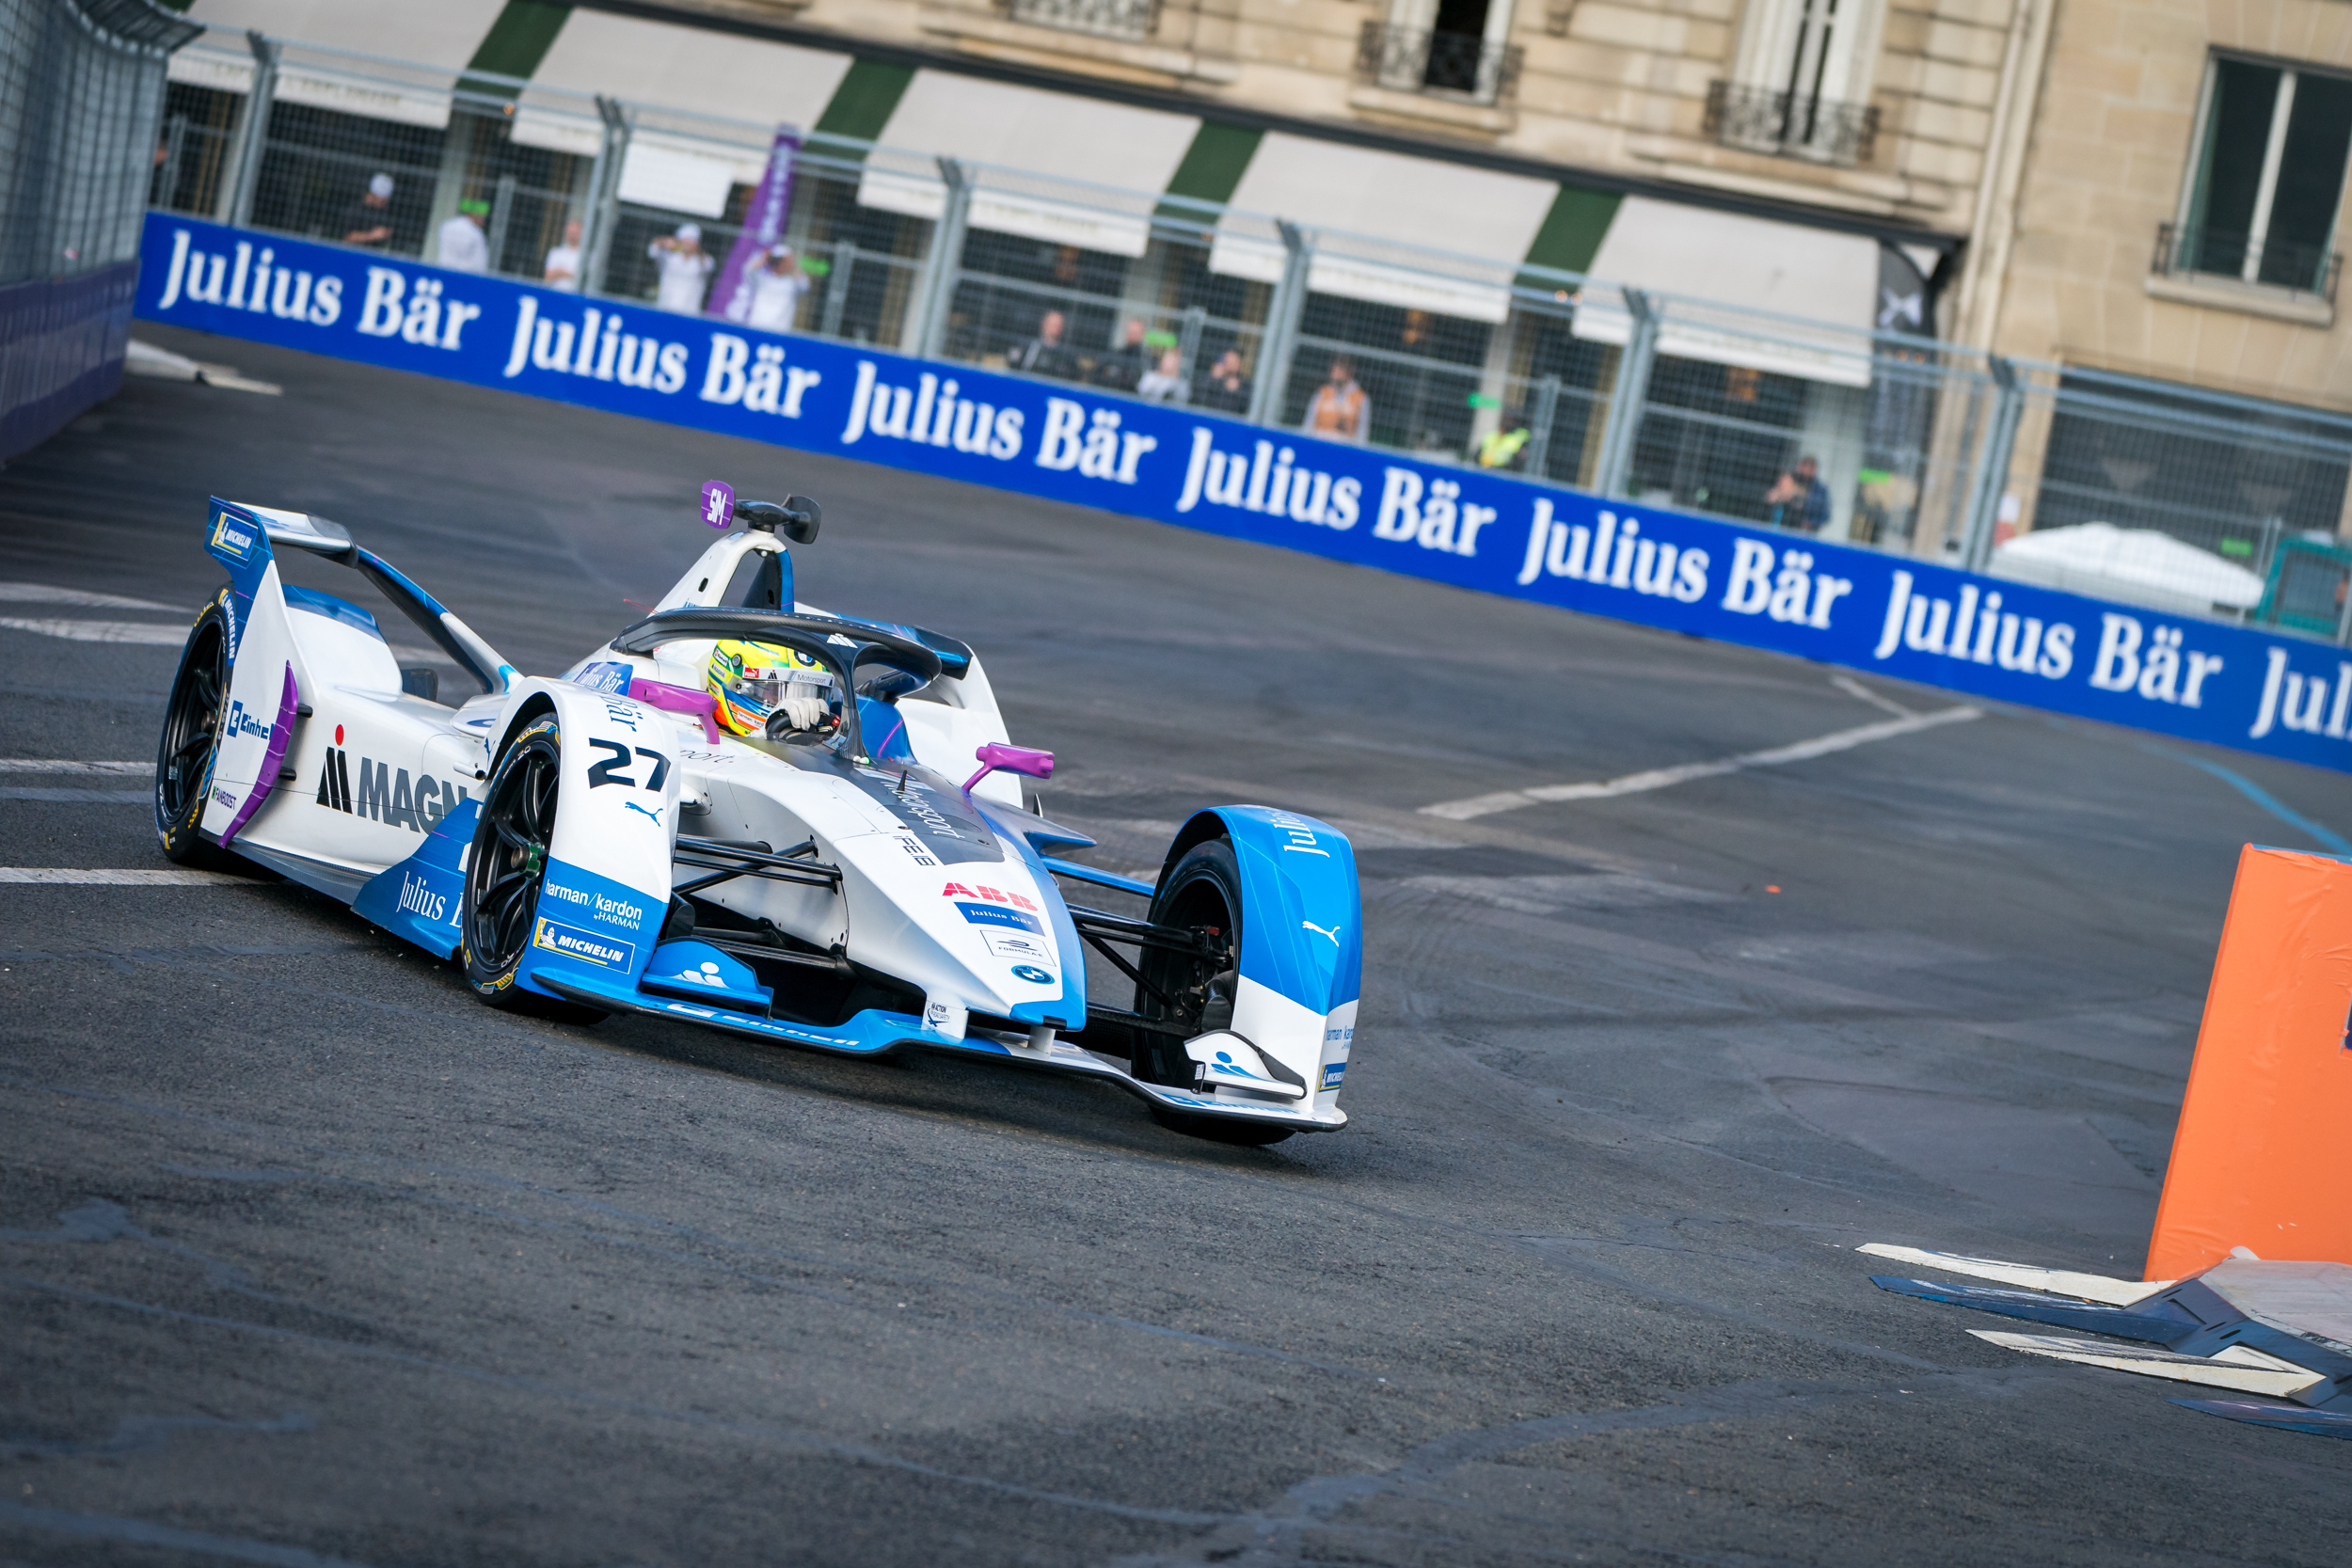 BMW i_Formula E Paris 2019_26&27-04-19_Florian Leger_SHARE & DARE_HD_N°-251.jpg